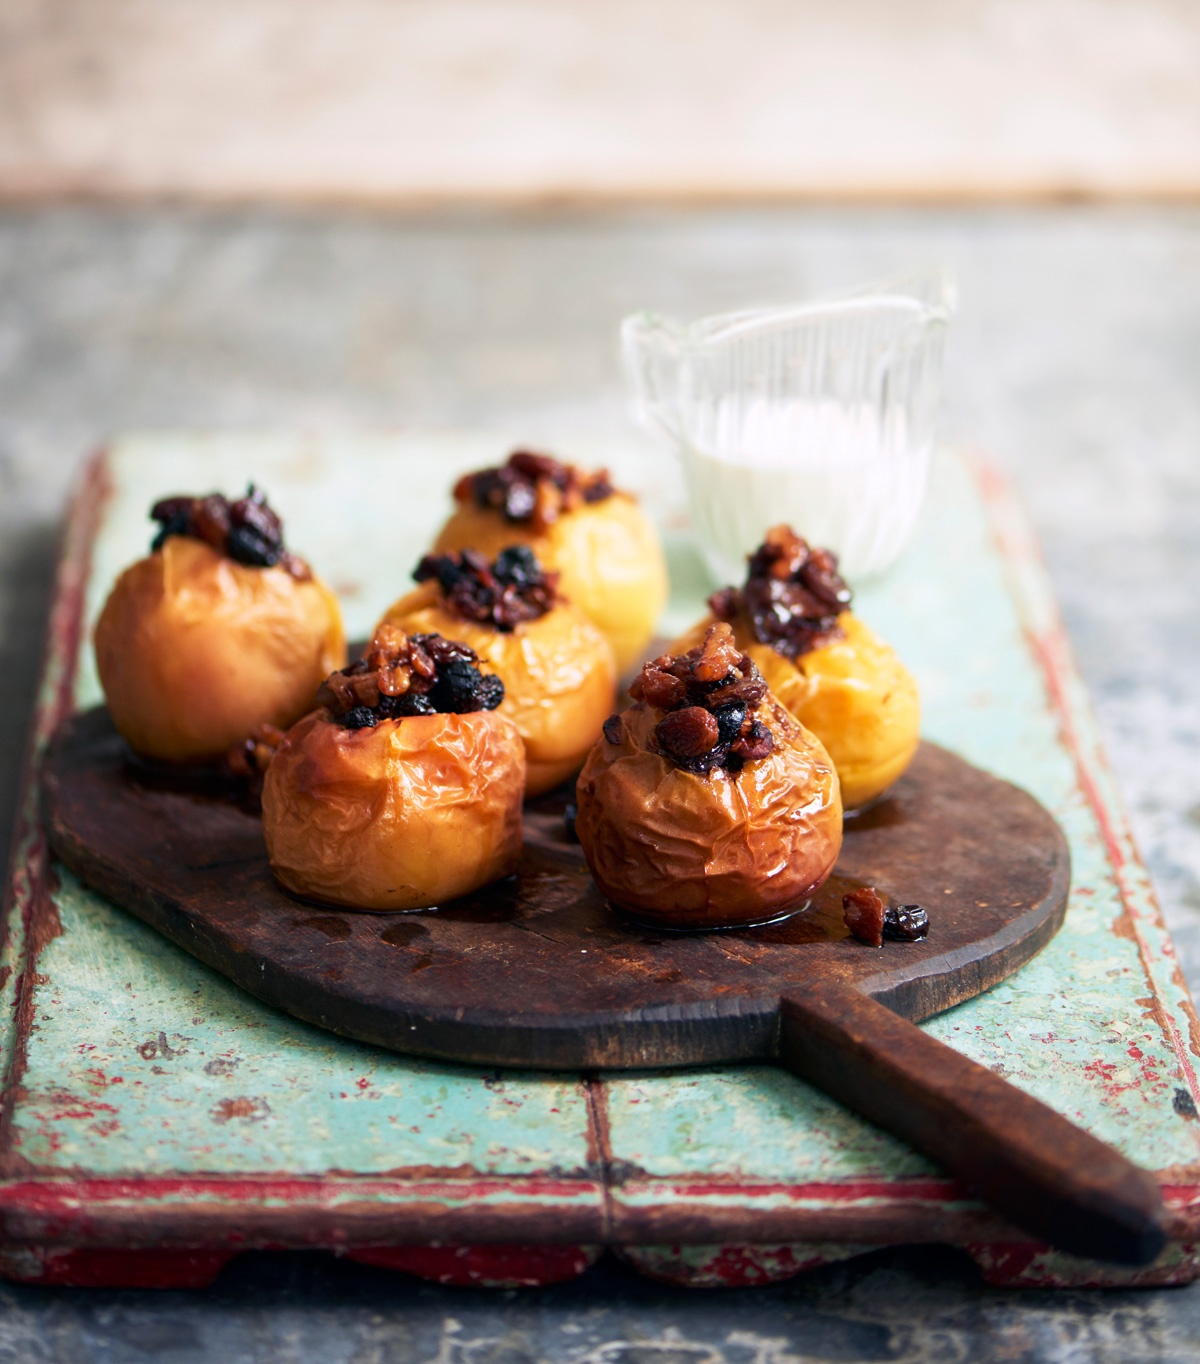 Image of Angela Clutton's Baked Apples with Balsamic